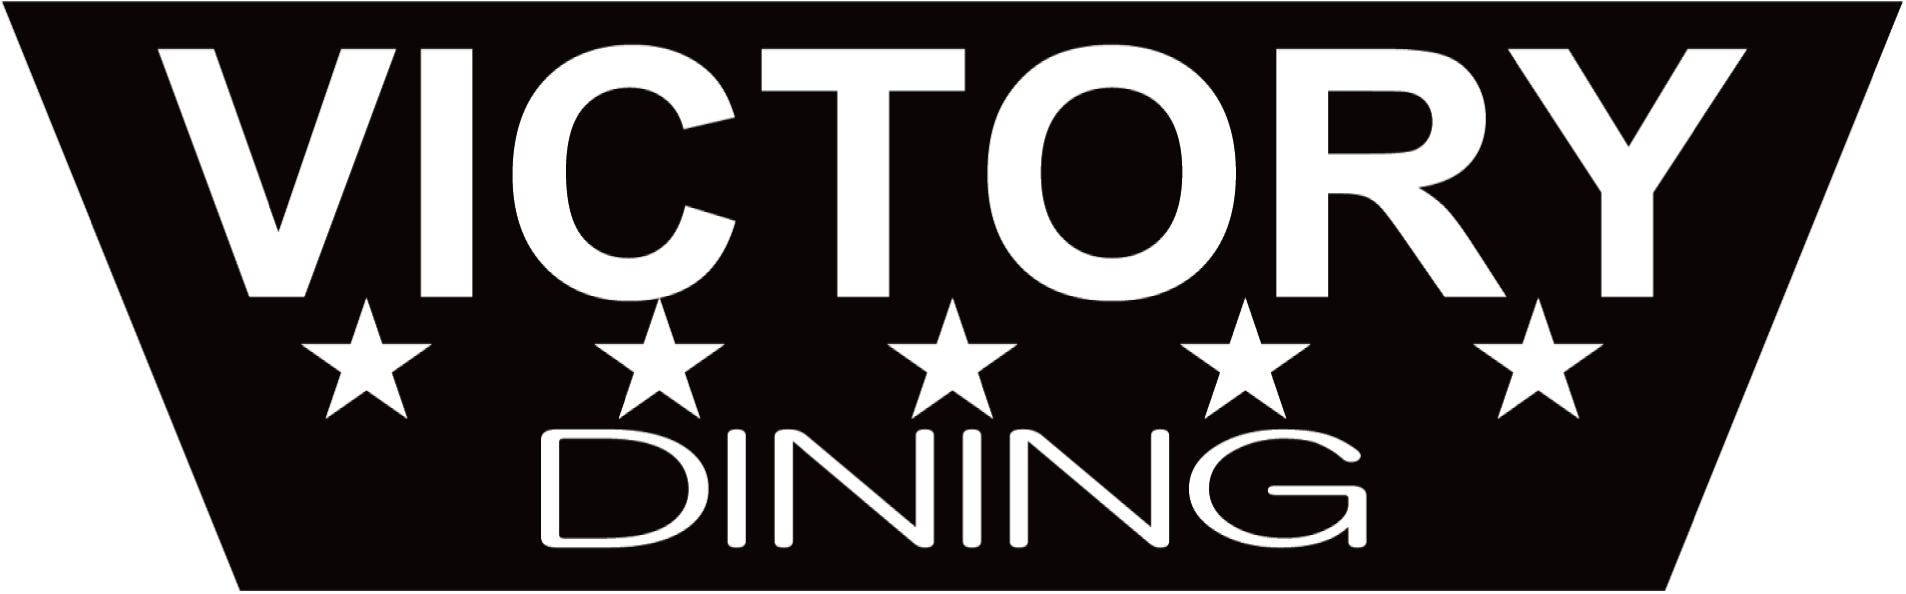 VICTORY DINING